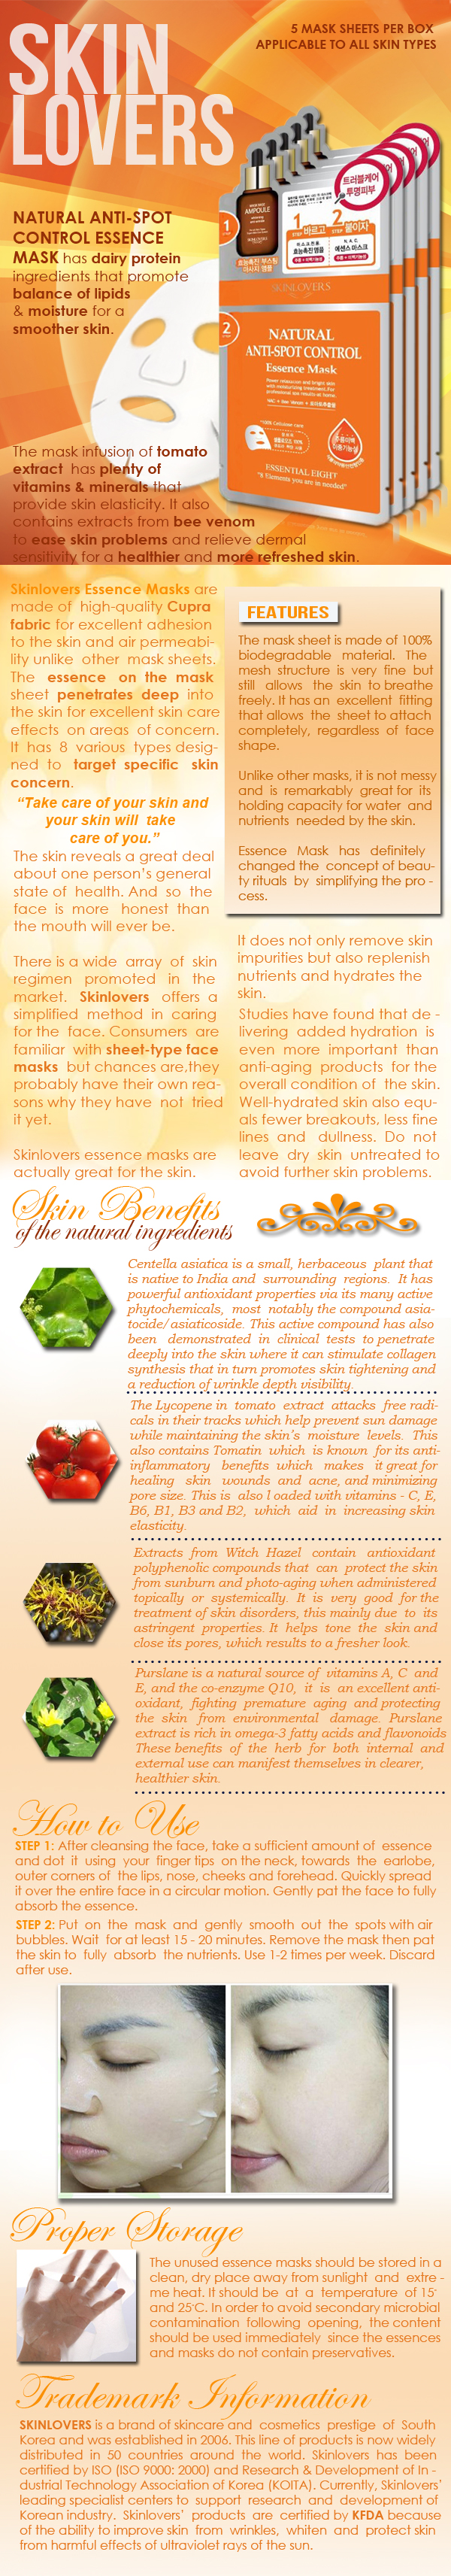 Skinlovers Natural Anti-Spot Control Essence Mask Product Information